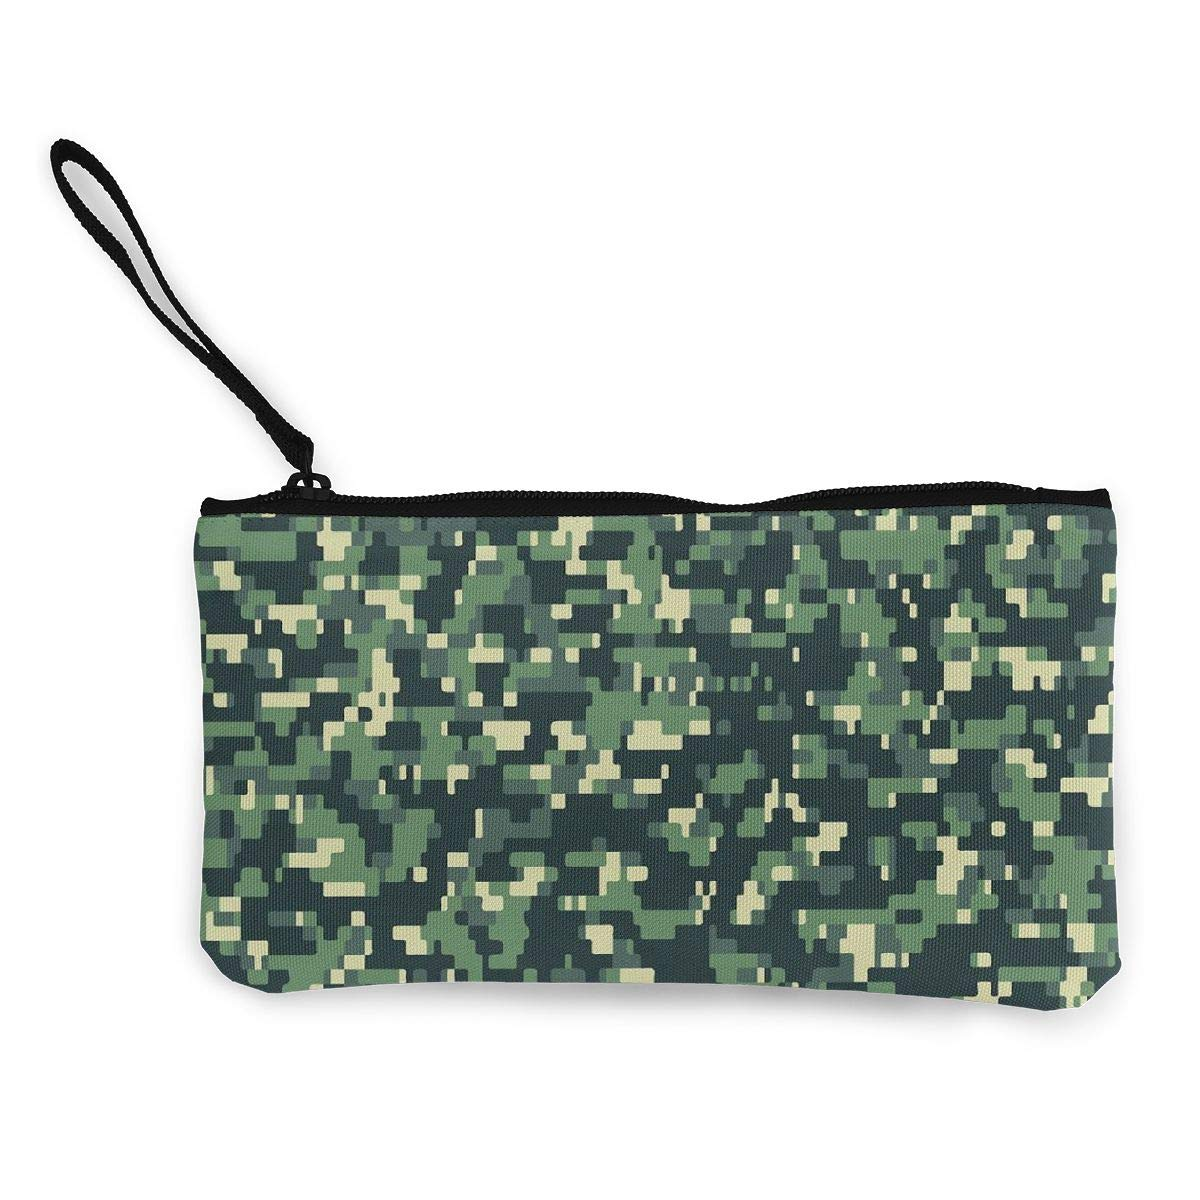 YUANSHAN Multicam Camouflage Pattern Unisex Canvas Coin Purse Change Cash Bag Zipper Small Purse Wallets with Handle